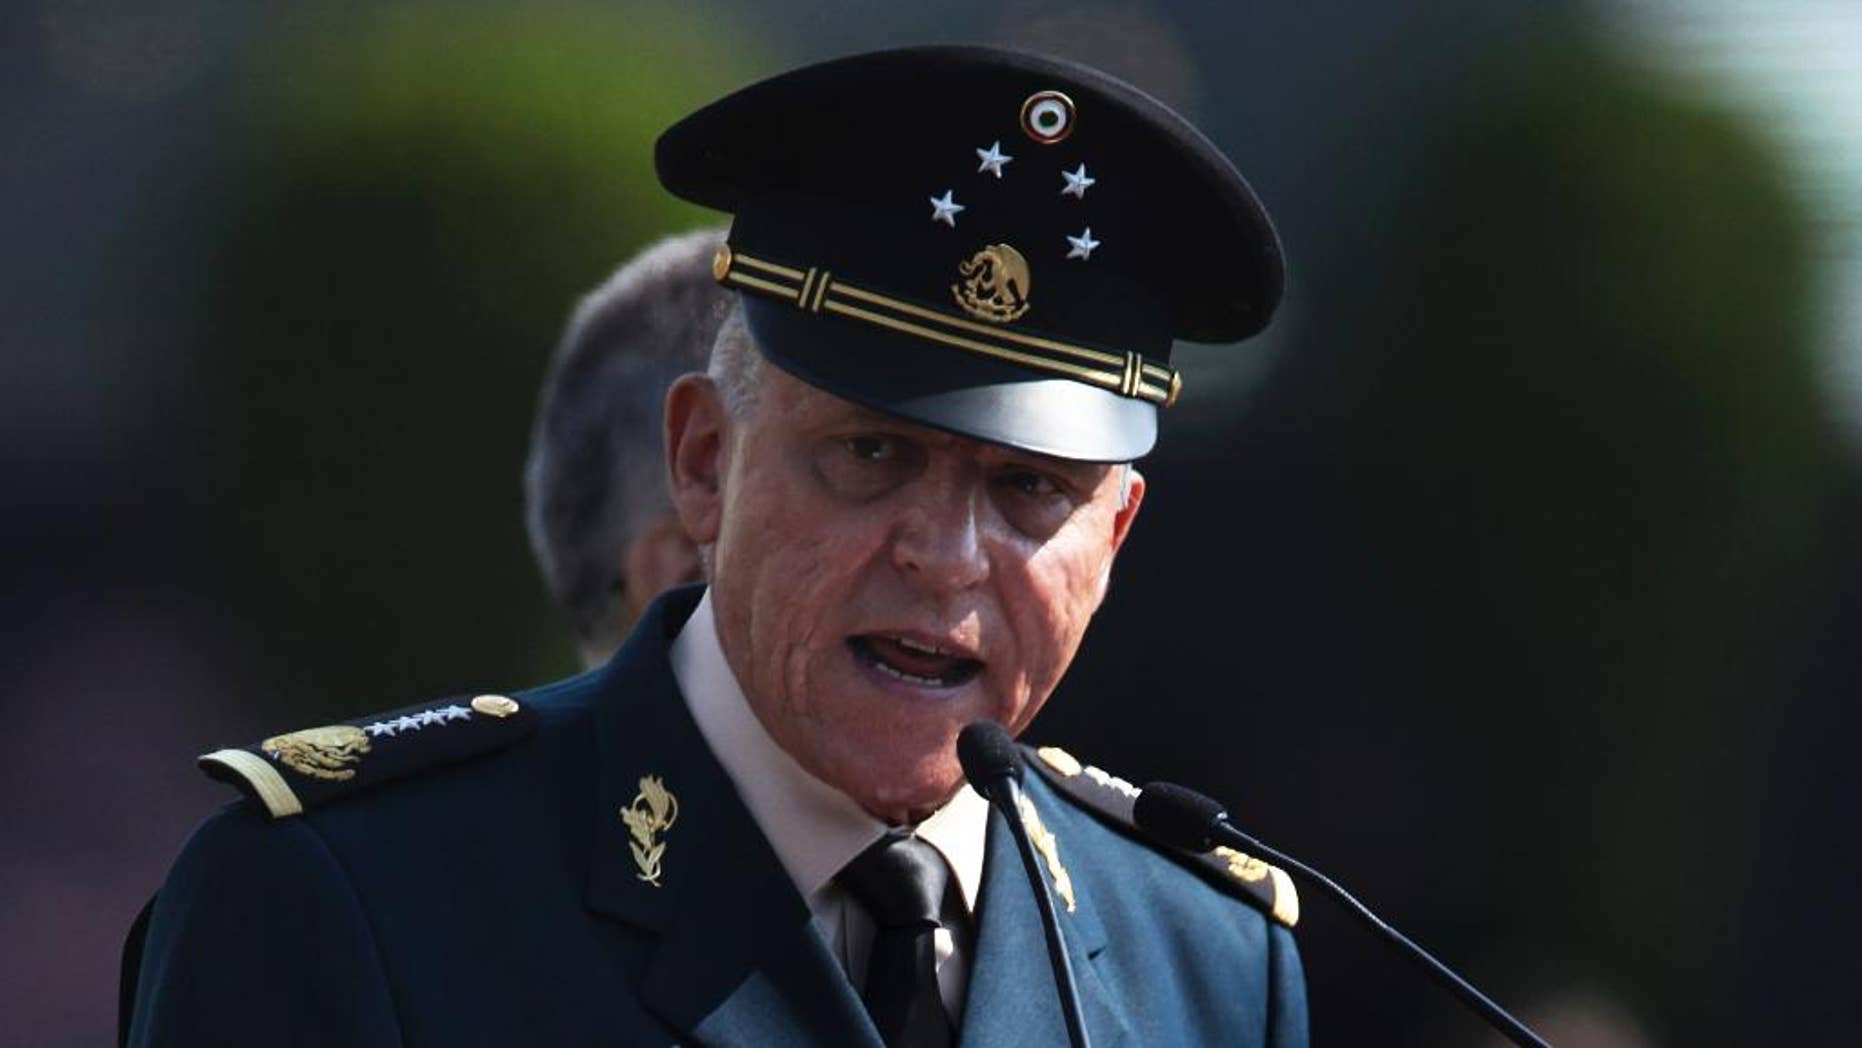 FILE - In this April 16, 2016, file photo, Mexico's Defense Secretary Gen. Salvador Cienfuegos Zepeda speaks to soldiers at the Number 1 military camp in Mexico City. Cienfuegos said Thursday, Dec. 8, that the army is uncomfortable with the law-enforcement role it was given a decade ago when the government launched an offensive against drug cartels. (AP Photo/Marco Ugarte, File)